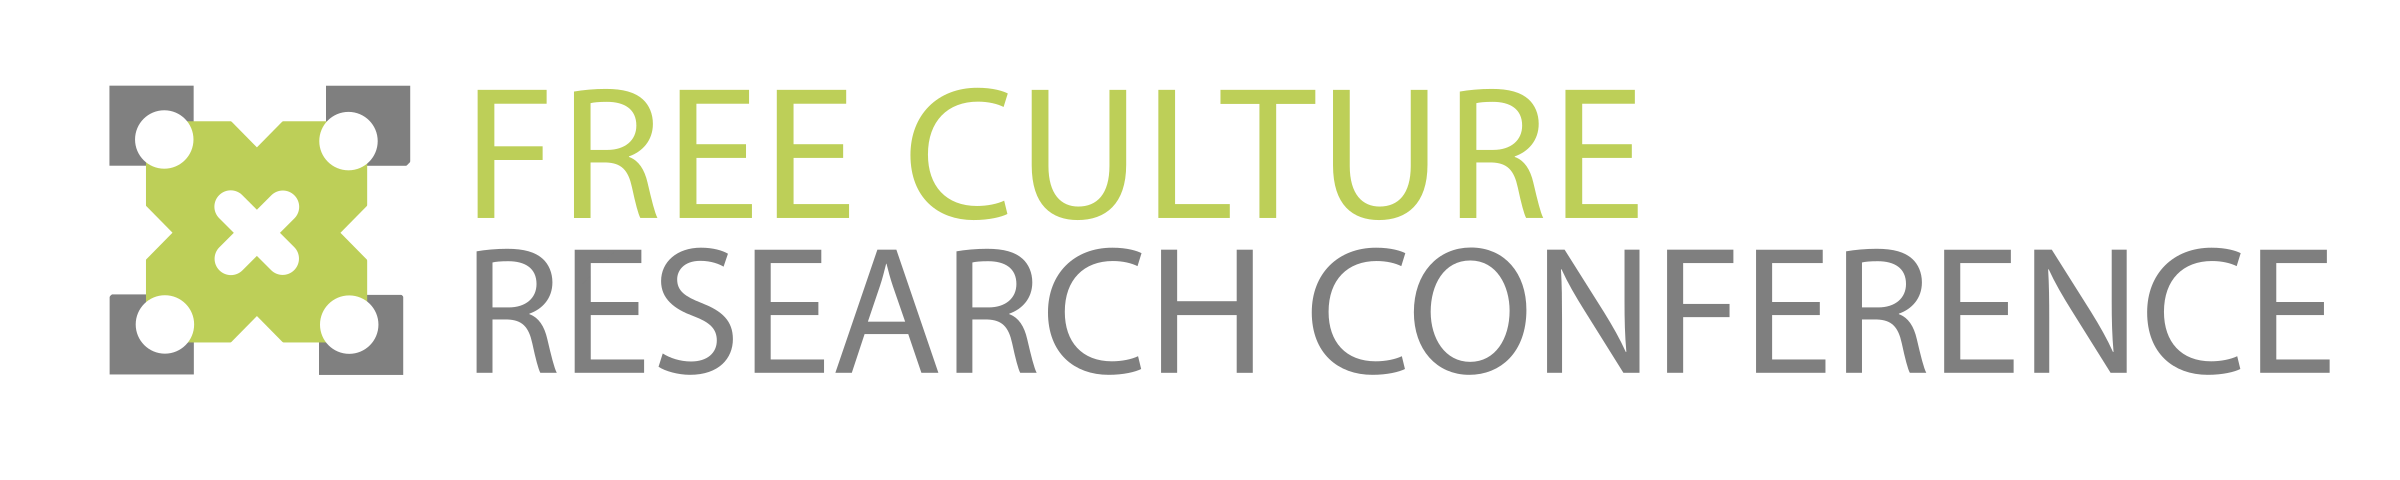 Free Culture Research Conference Logo 5 by hank0071